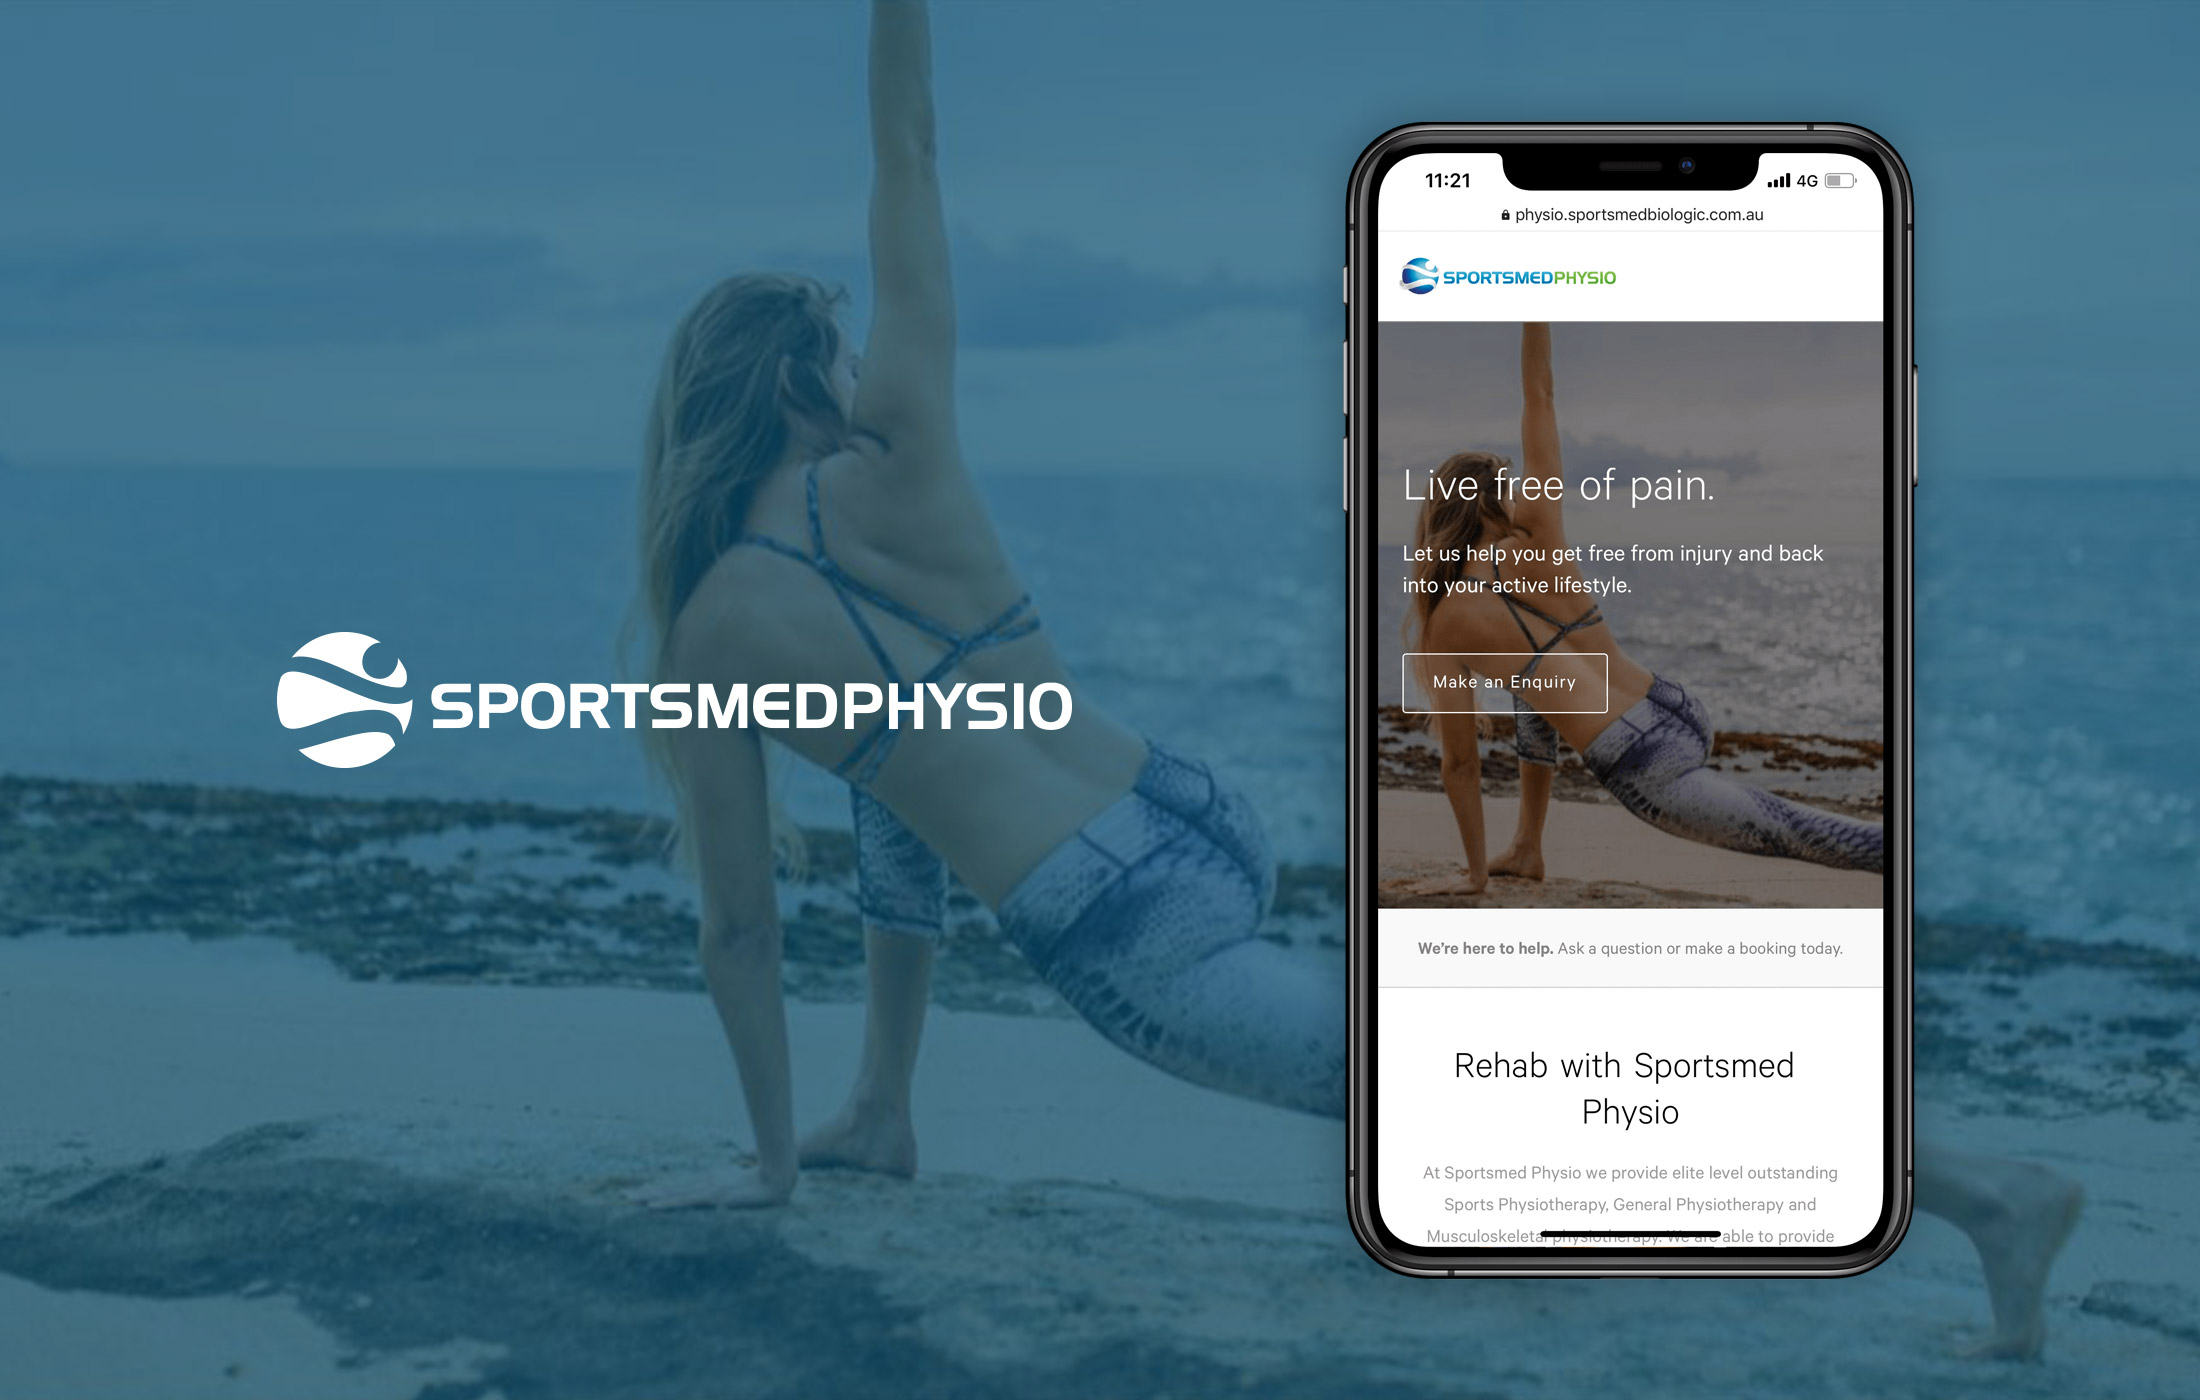 Sportsmed Biologic